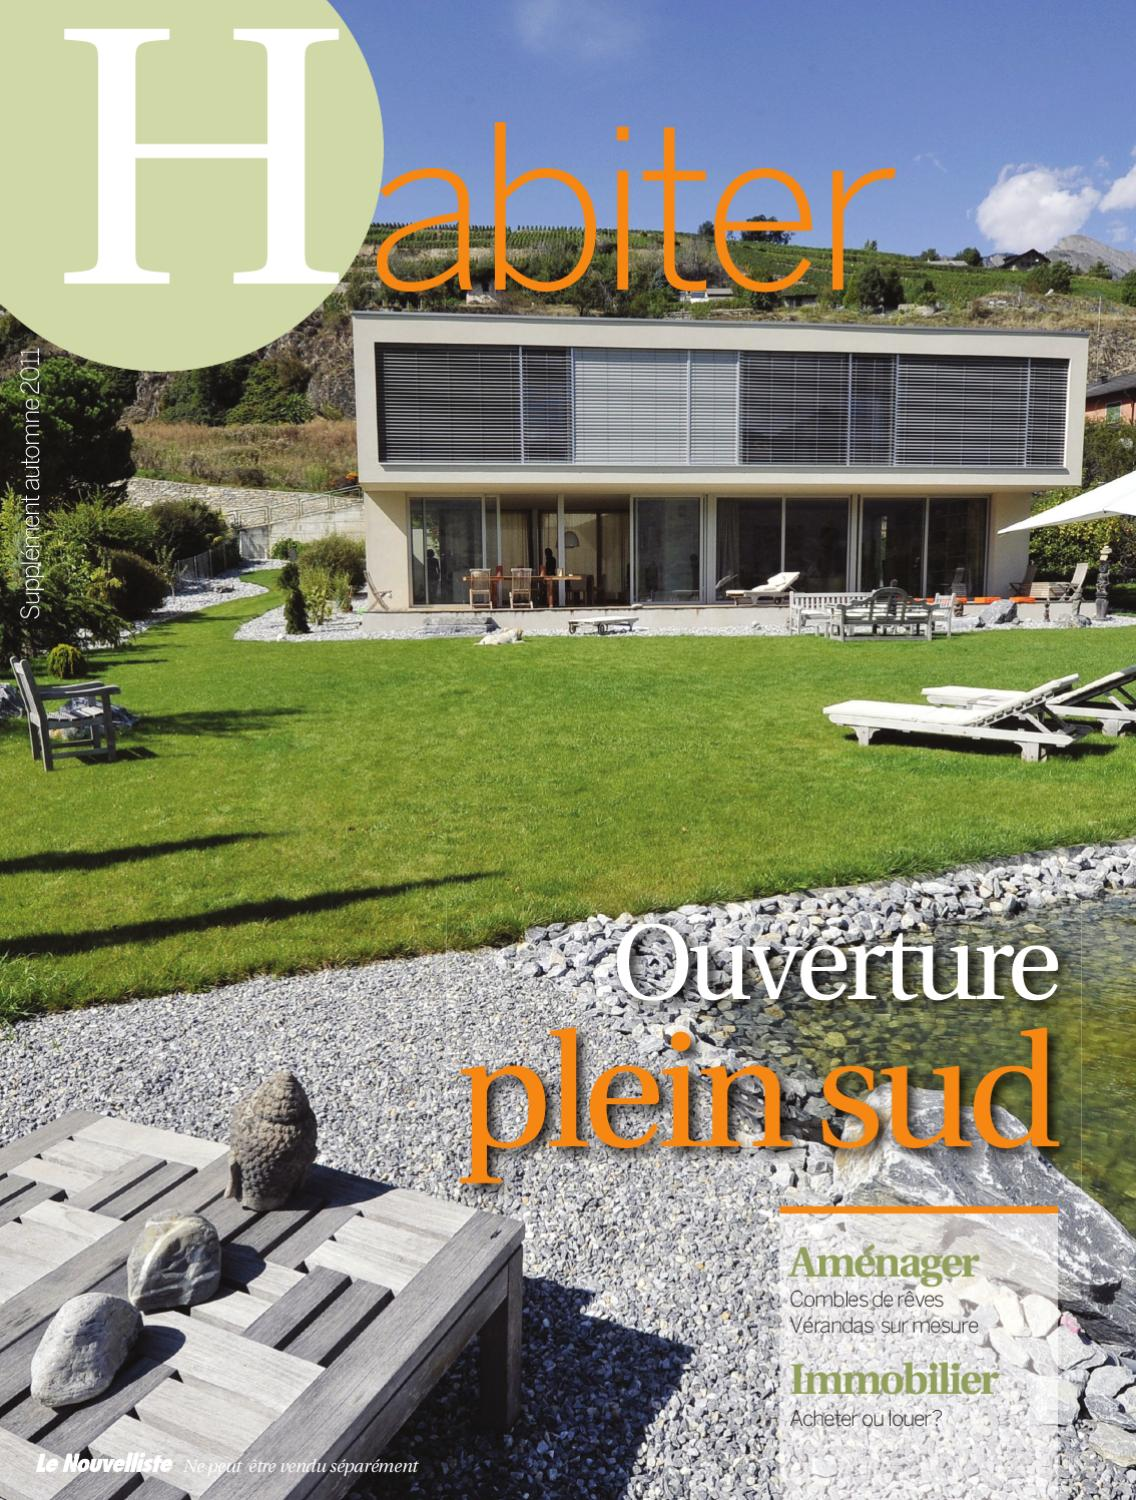 Dallage Jardin Best Of Habiter Automne 2011 by No Lie Berthod Brand issuu Of 64 Nouveau Dallage Jardin